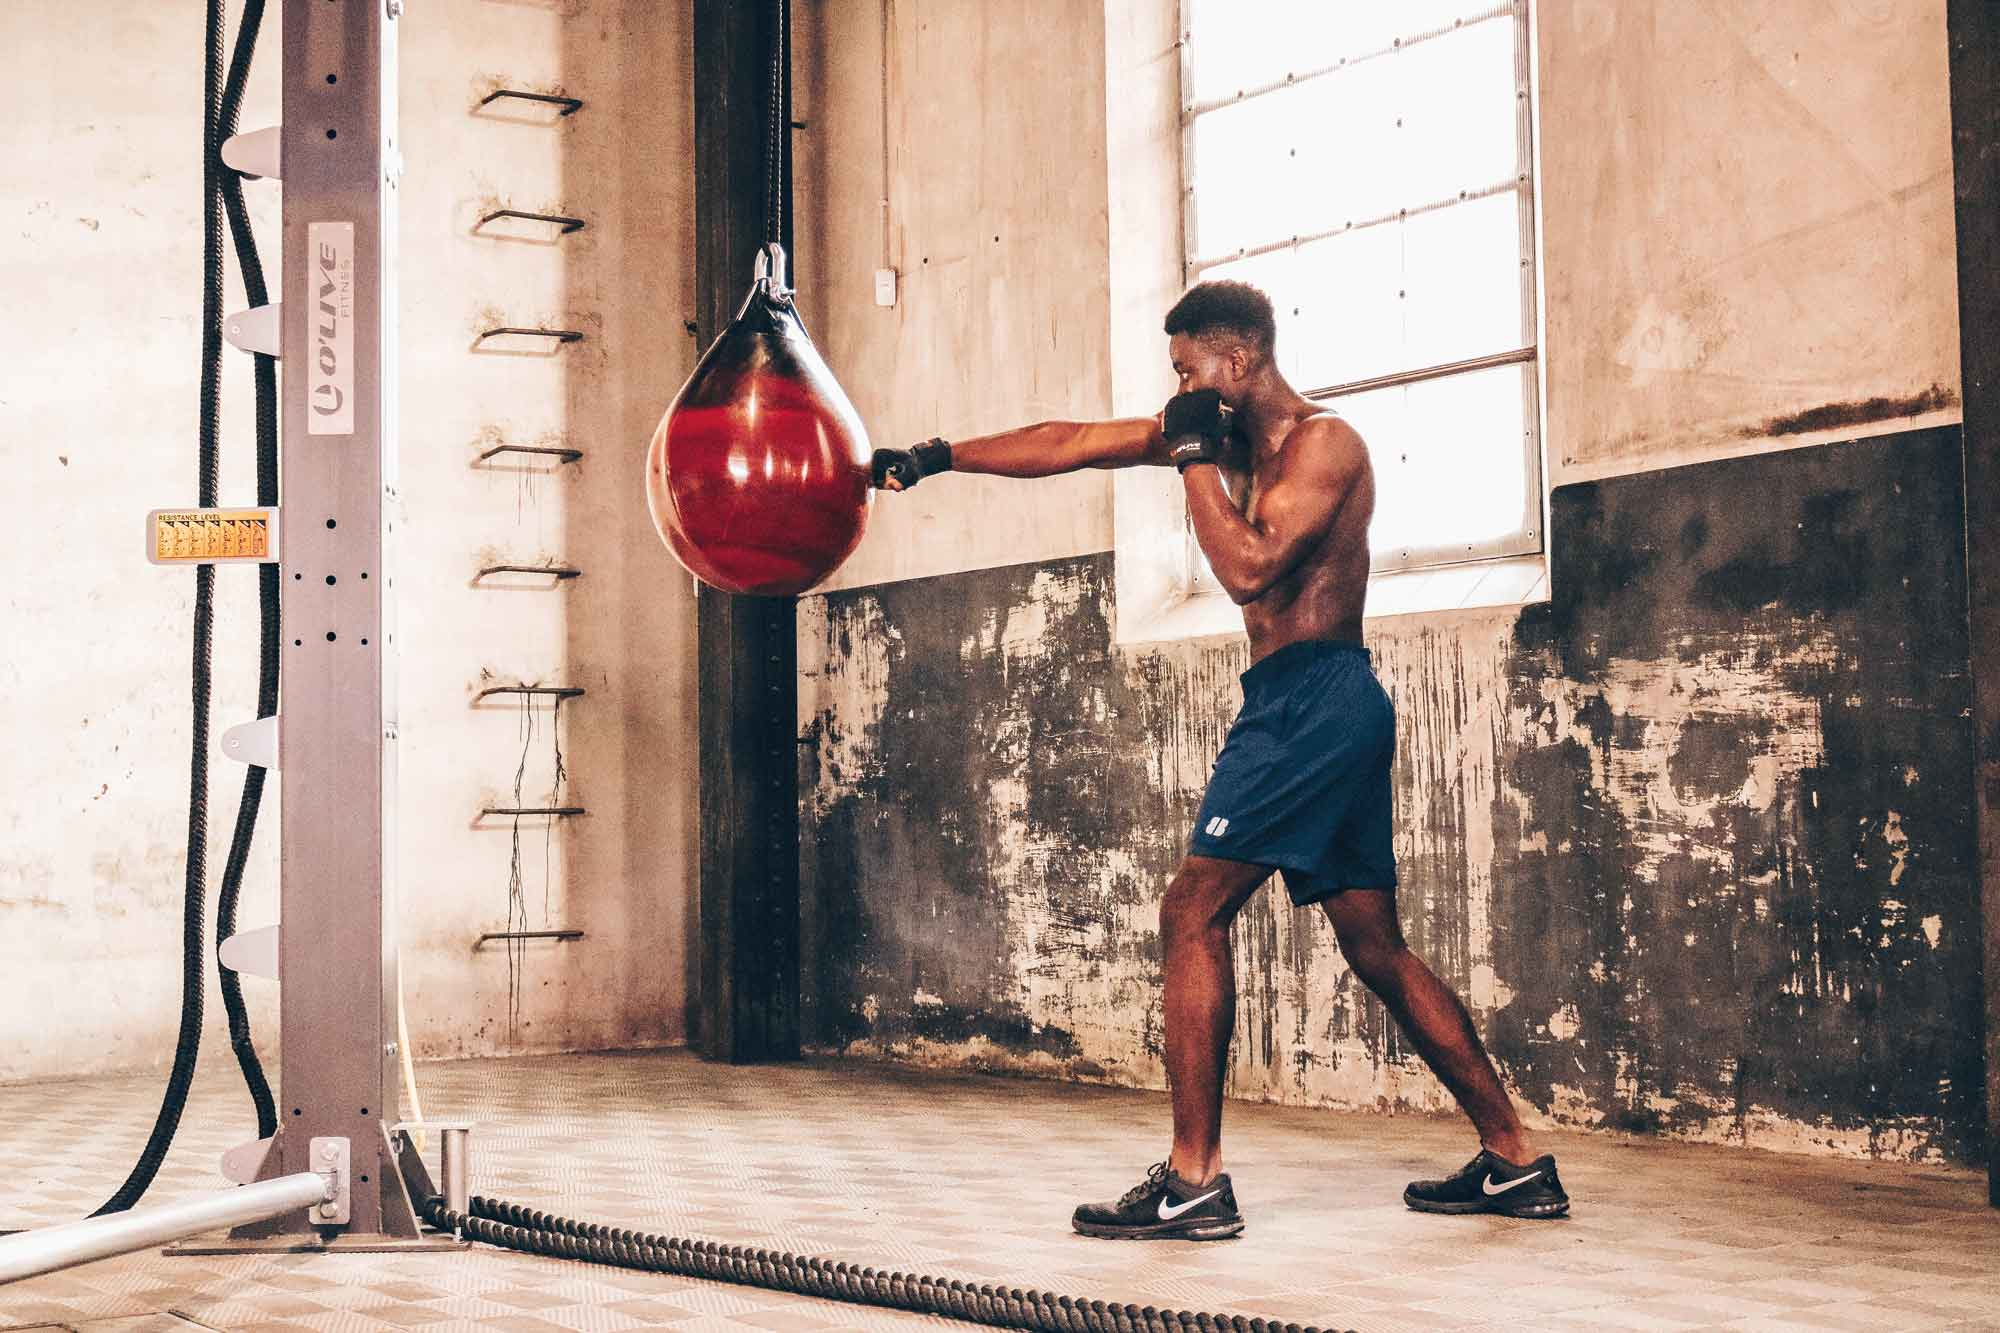 Boxing for fitness